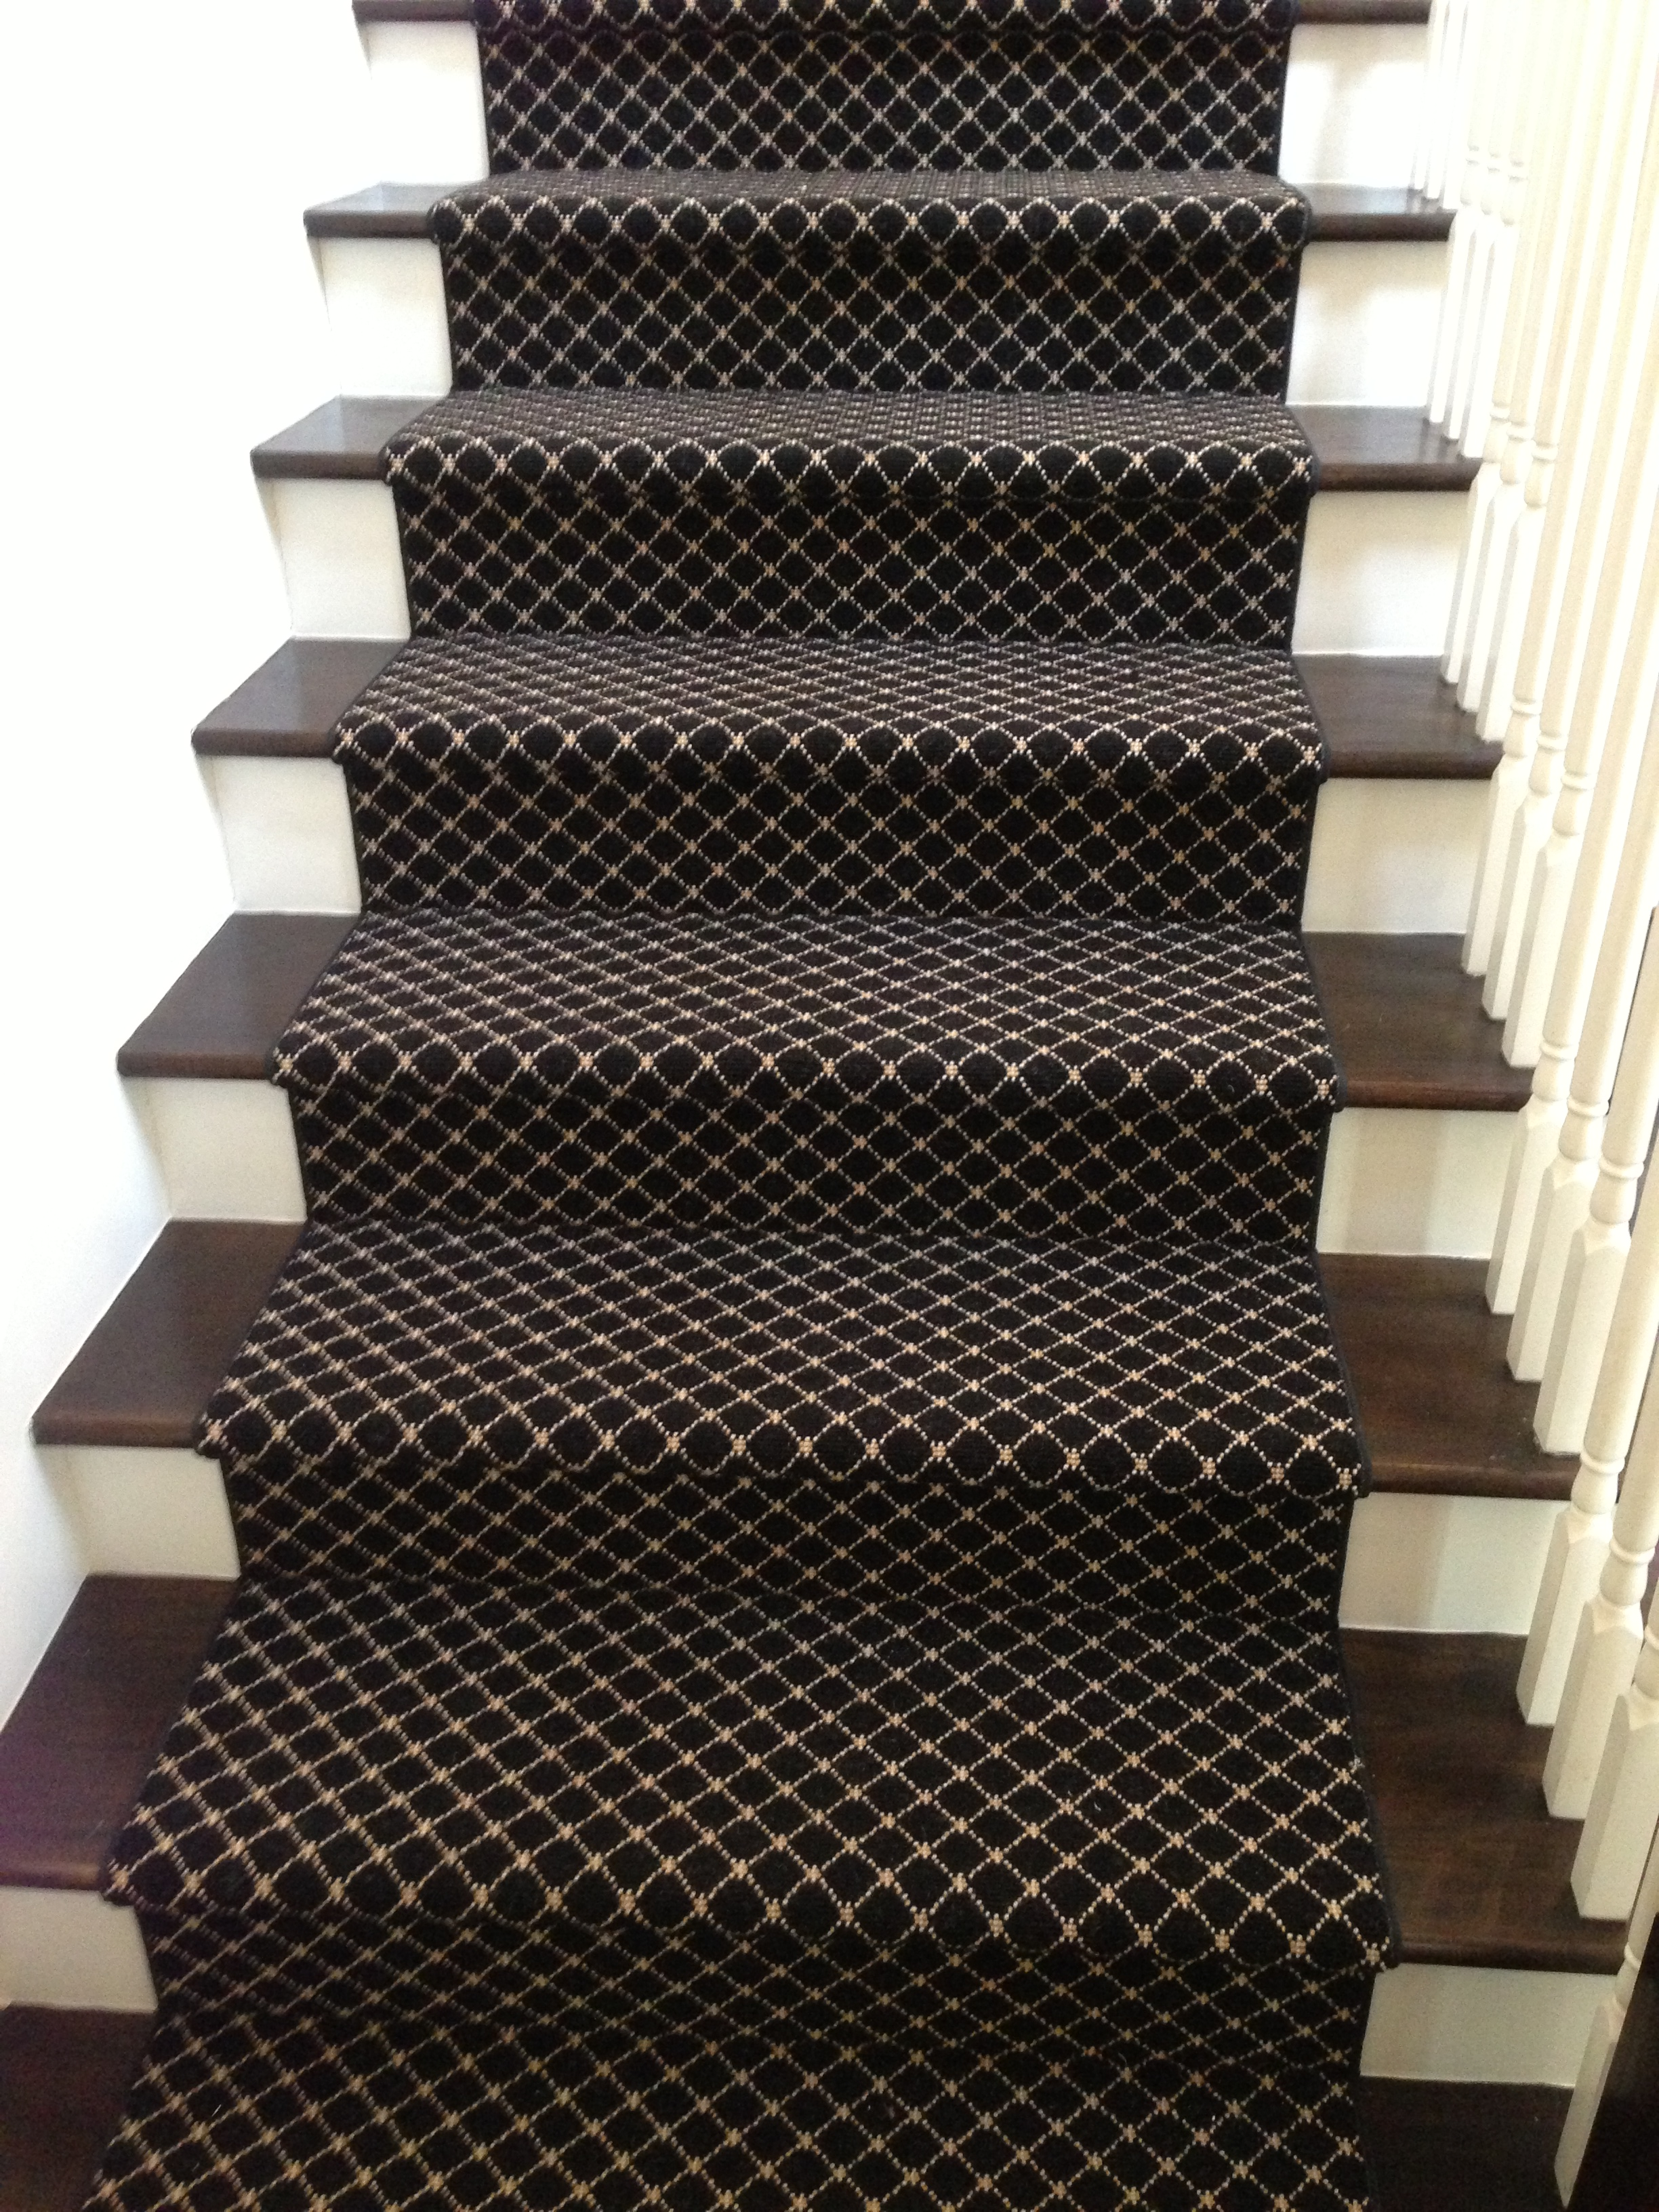 Should I Carpet My Stairs With The Same Carpet I Use Upstairs Designed